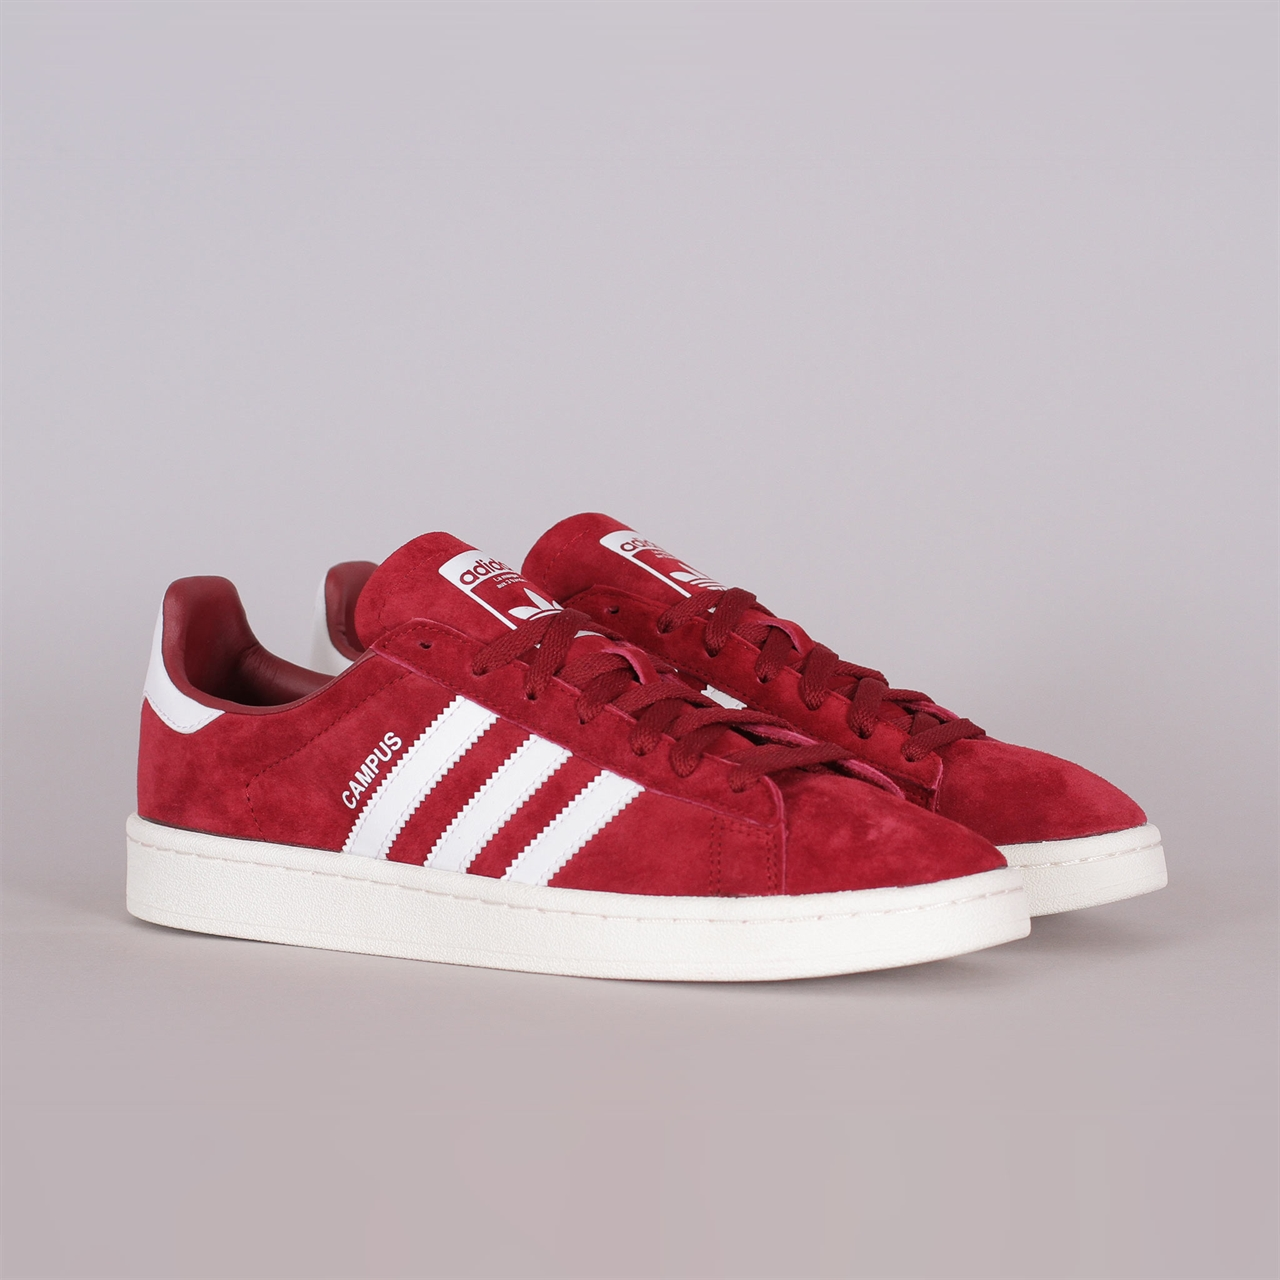 4b493459aa7397 Shelta - Adidas Originals Campus (BZ0087)